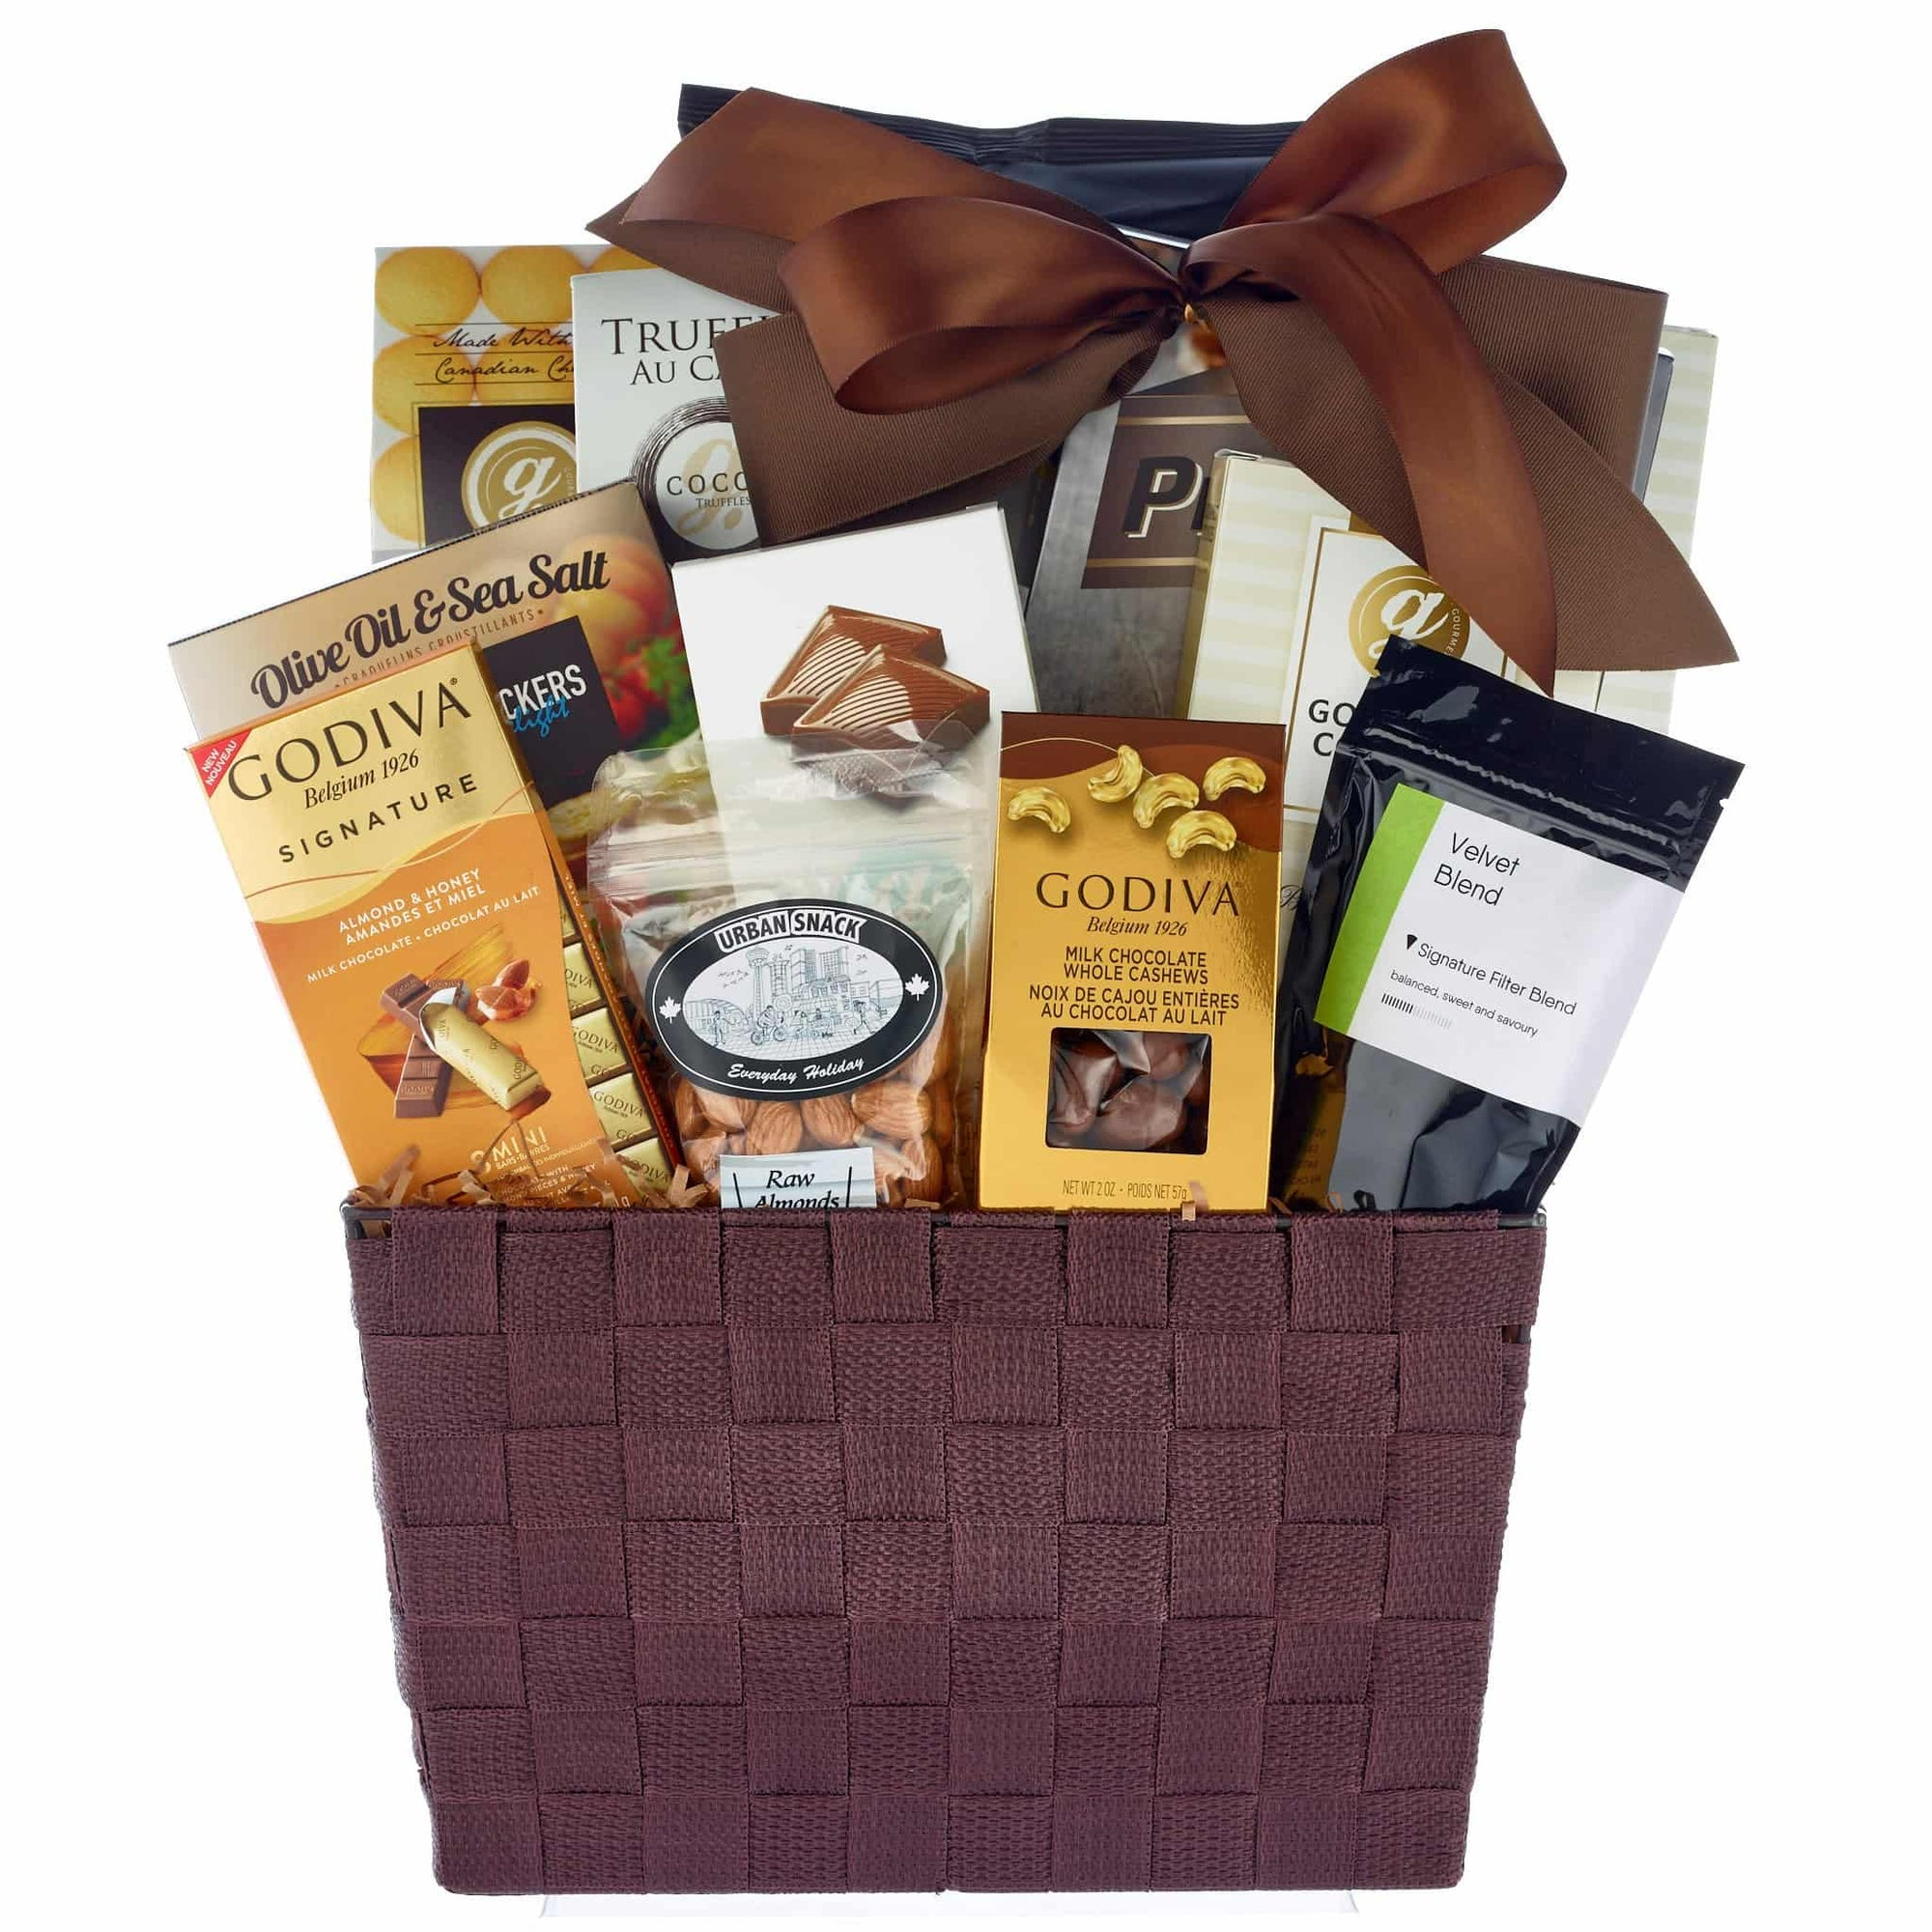 Large sympathy gift basket with godiva chocolates, nuts and crackers.